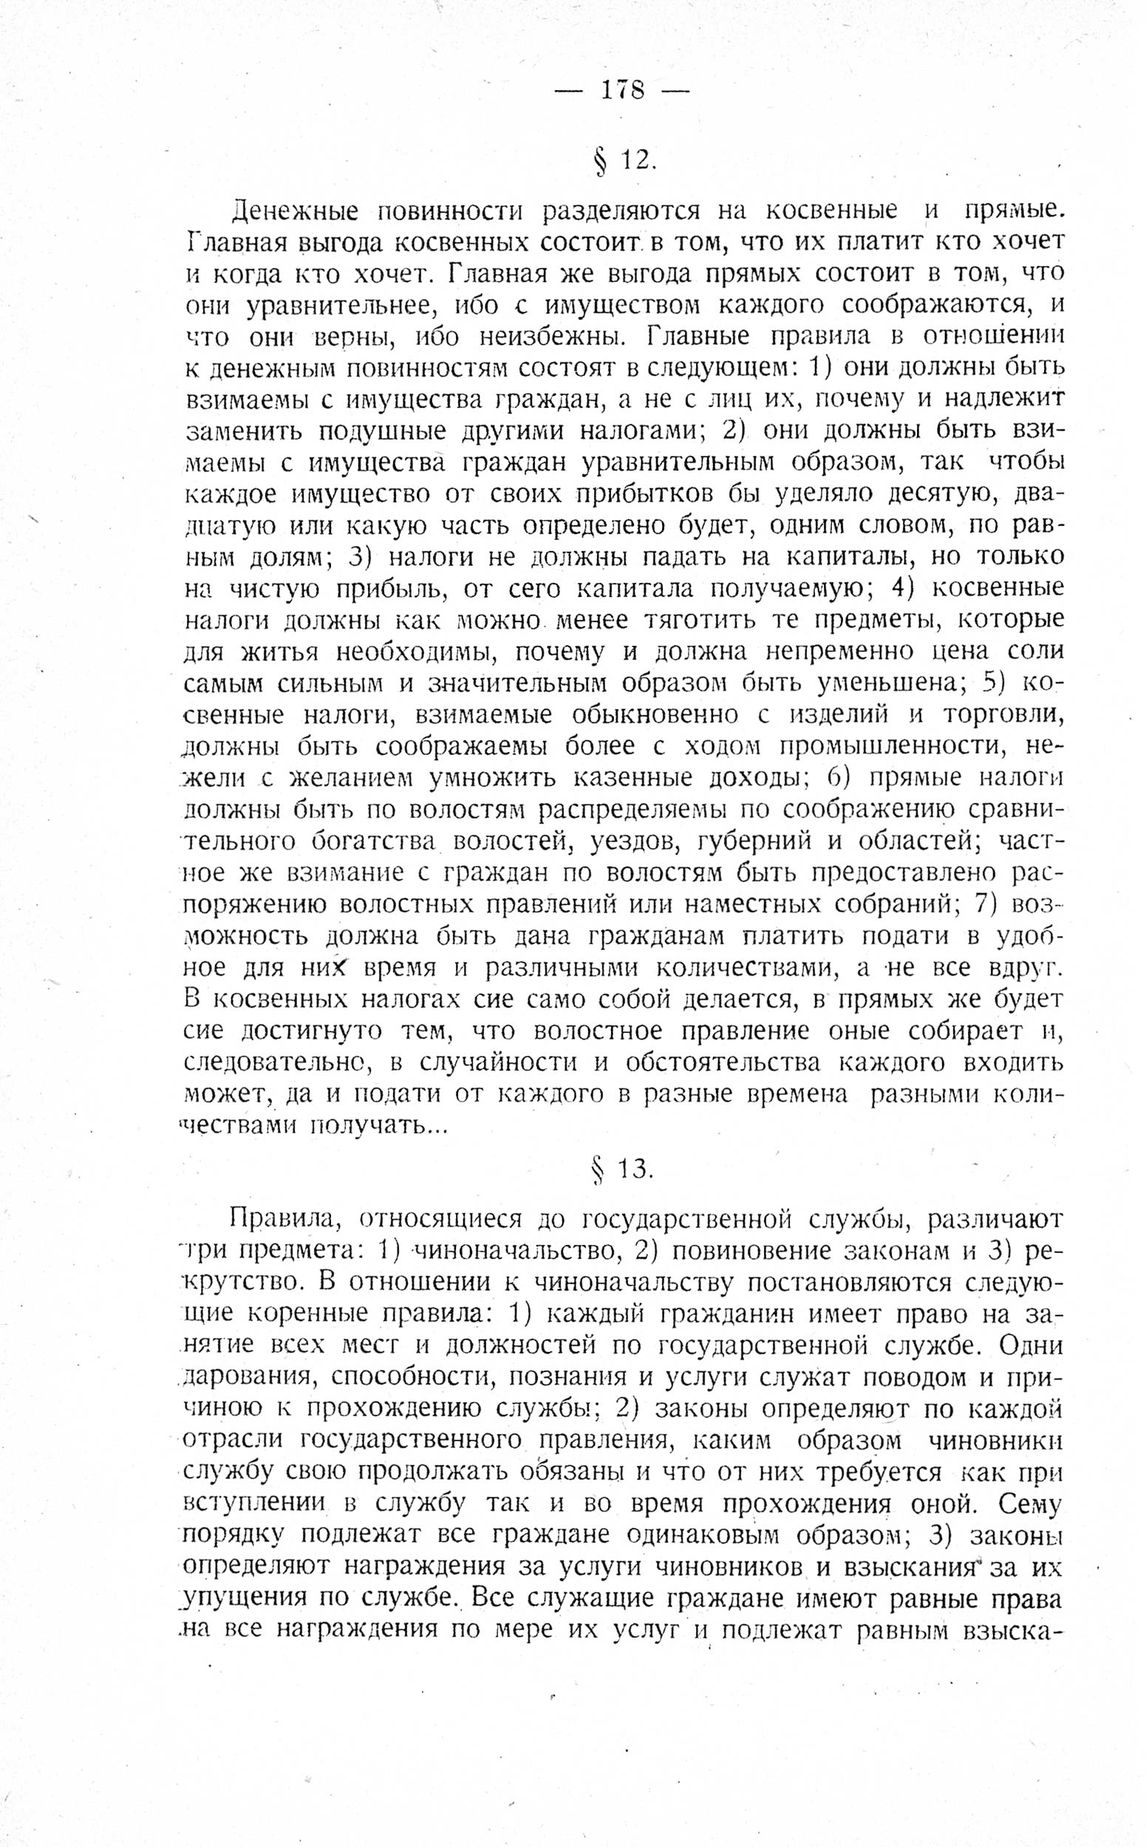 http://elib.shpl.ru/pages/625761/zooms/7